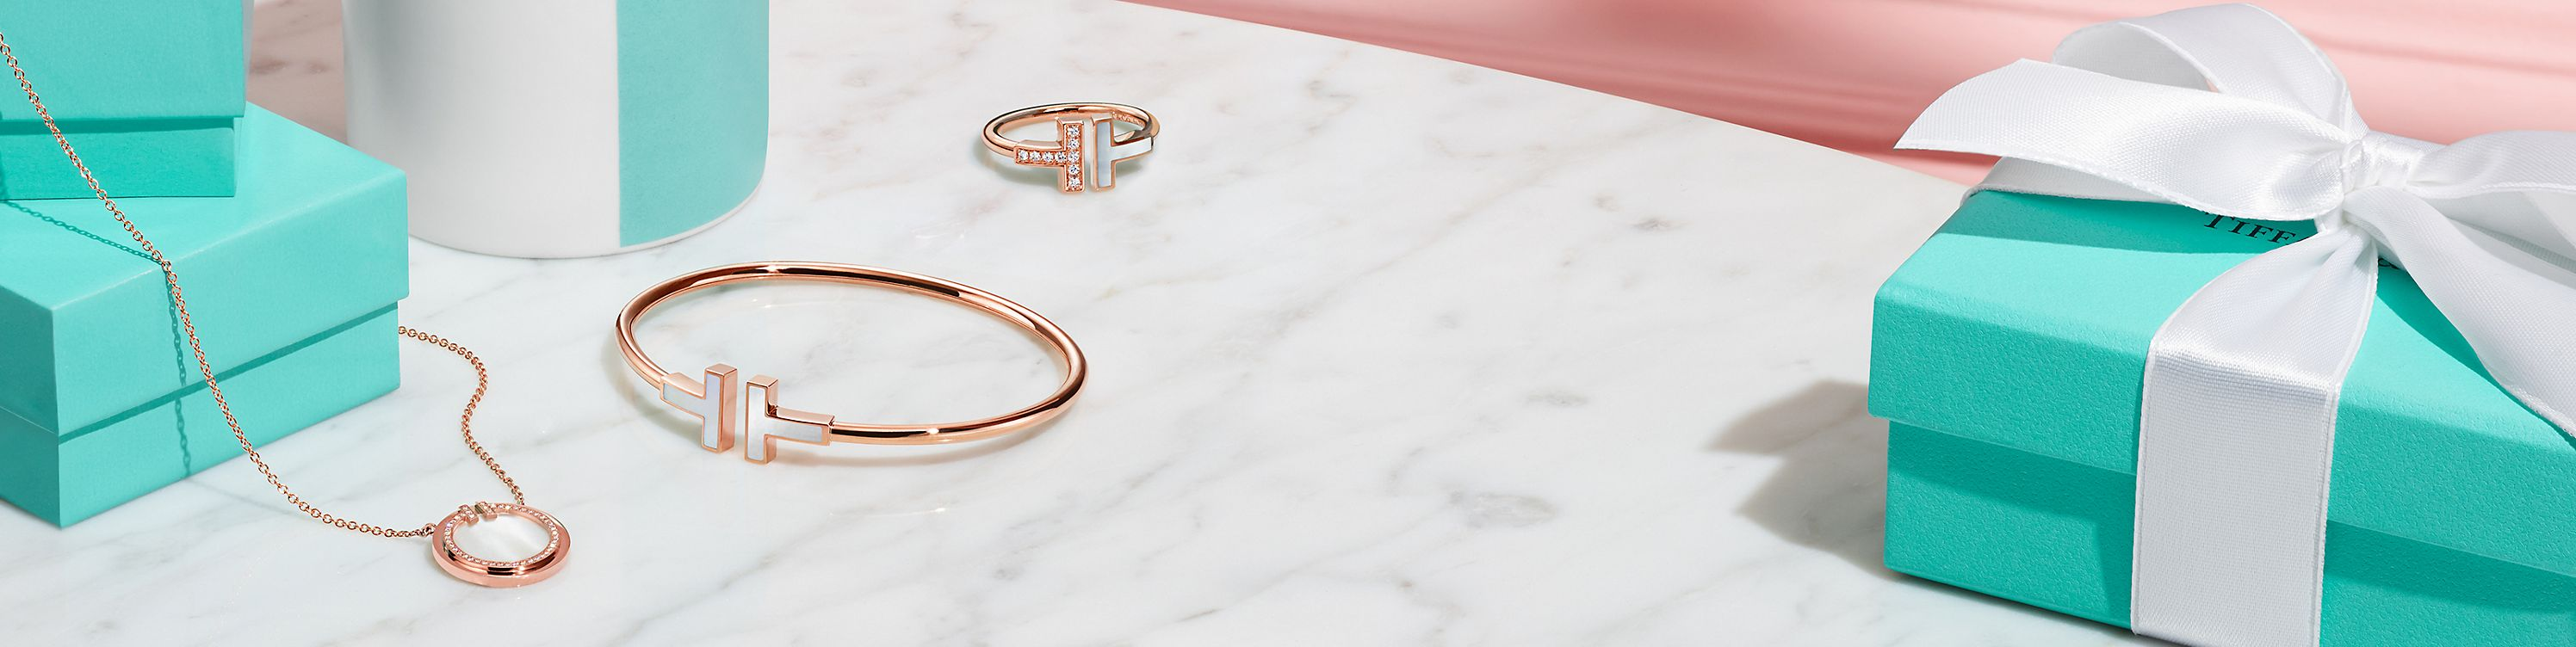 Idee regalo per lei Tiffany & Co.